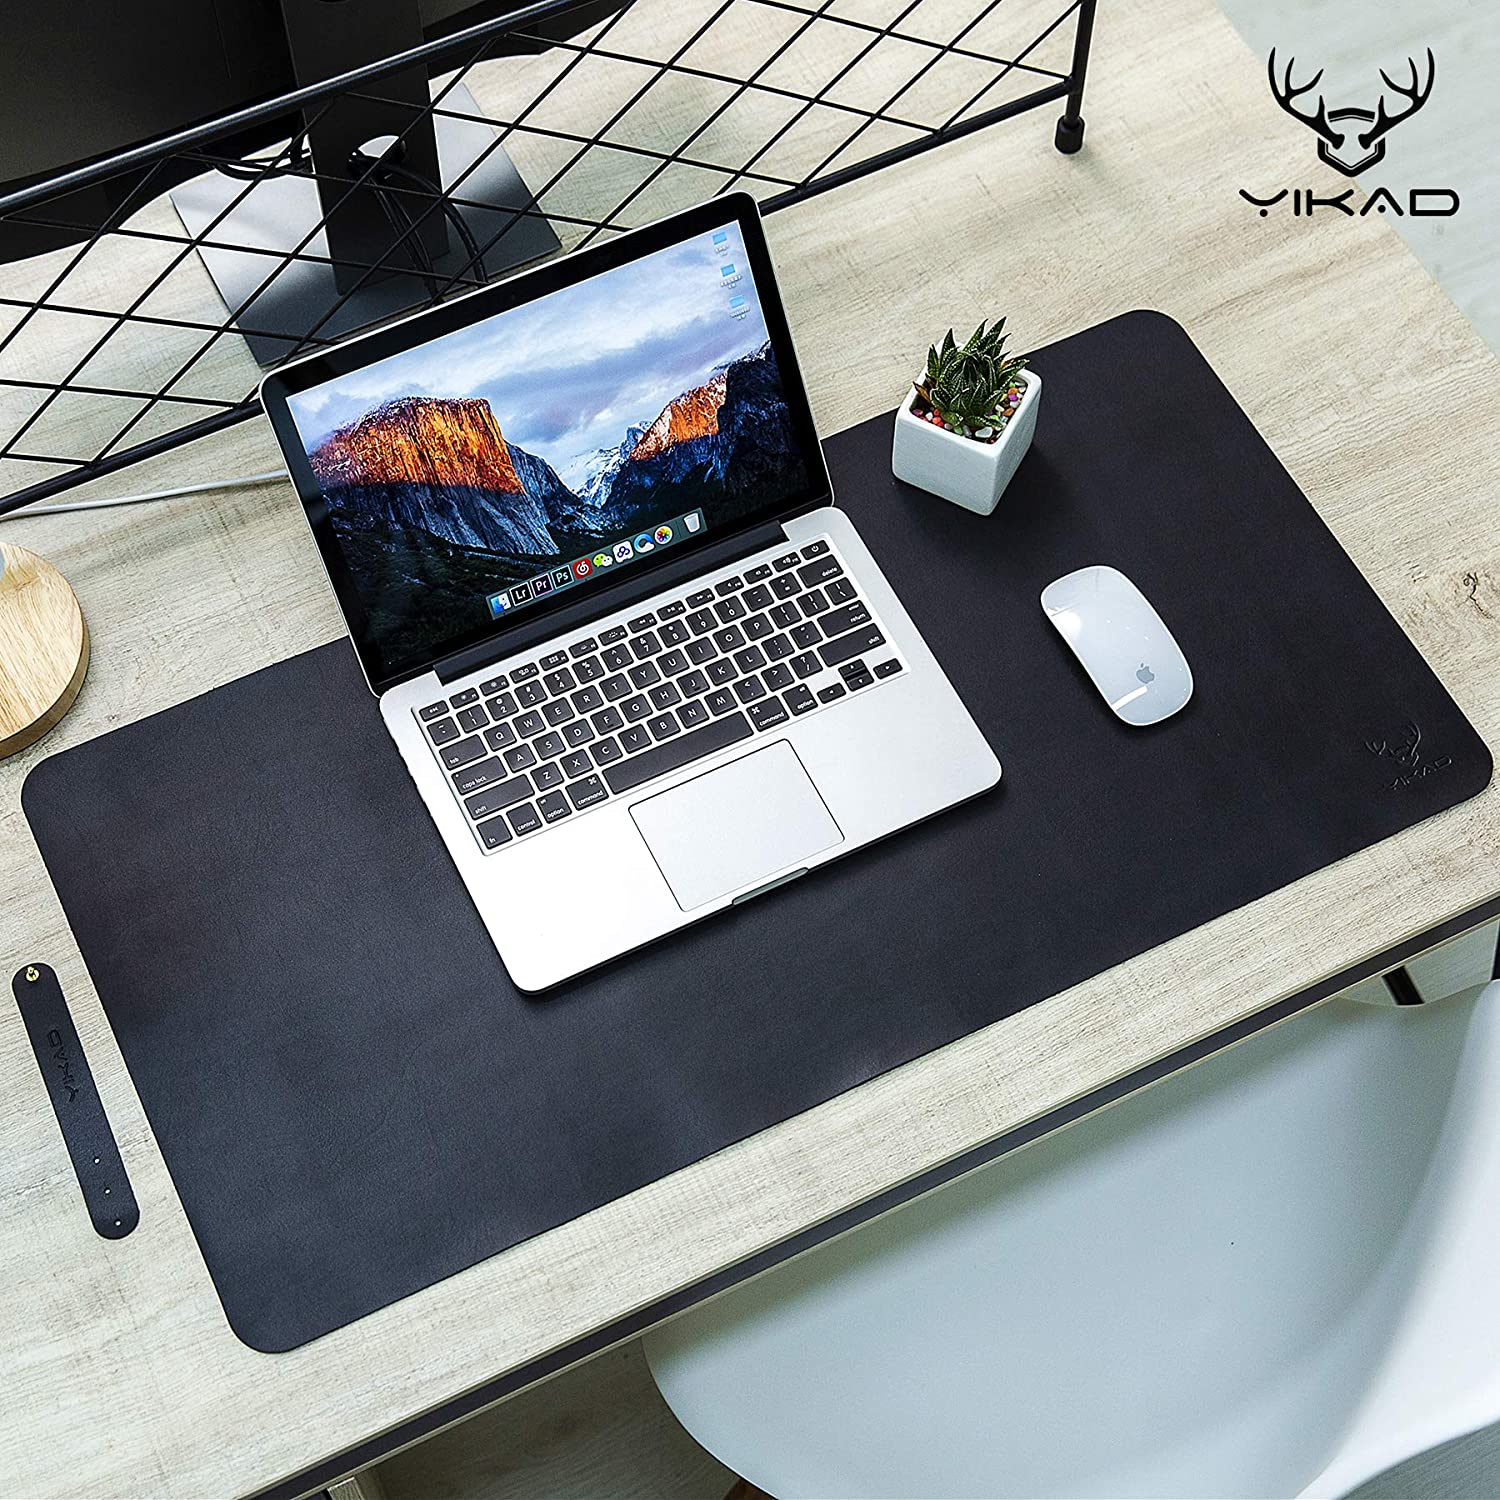 """Yikda Extended leather Mouse Pad / Mat, Large Office Writing Gaming Desk Computer leather Mat Mousepad,Waterproof,Ultra Thin 1.2mm - 31""""x15.5"""""""